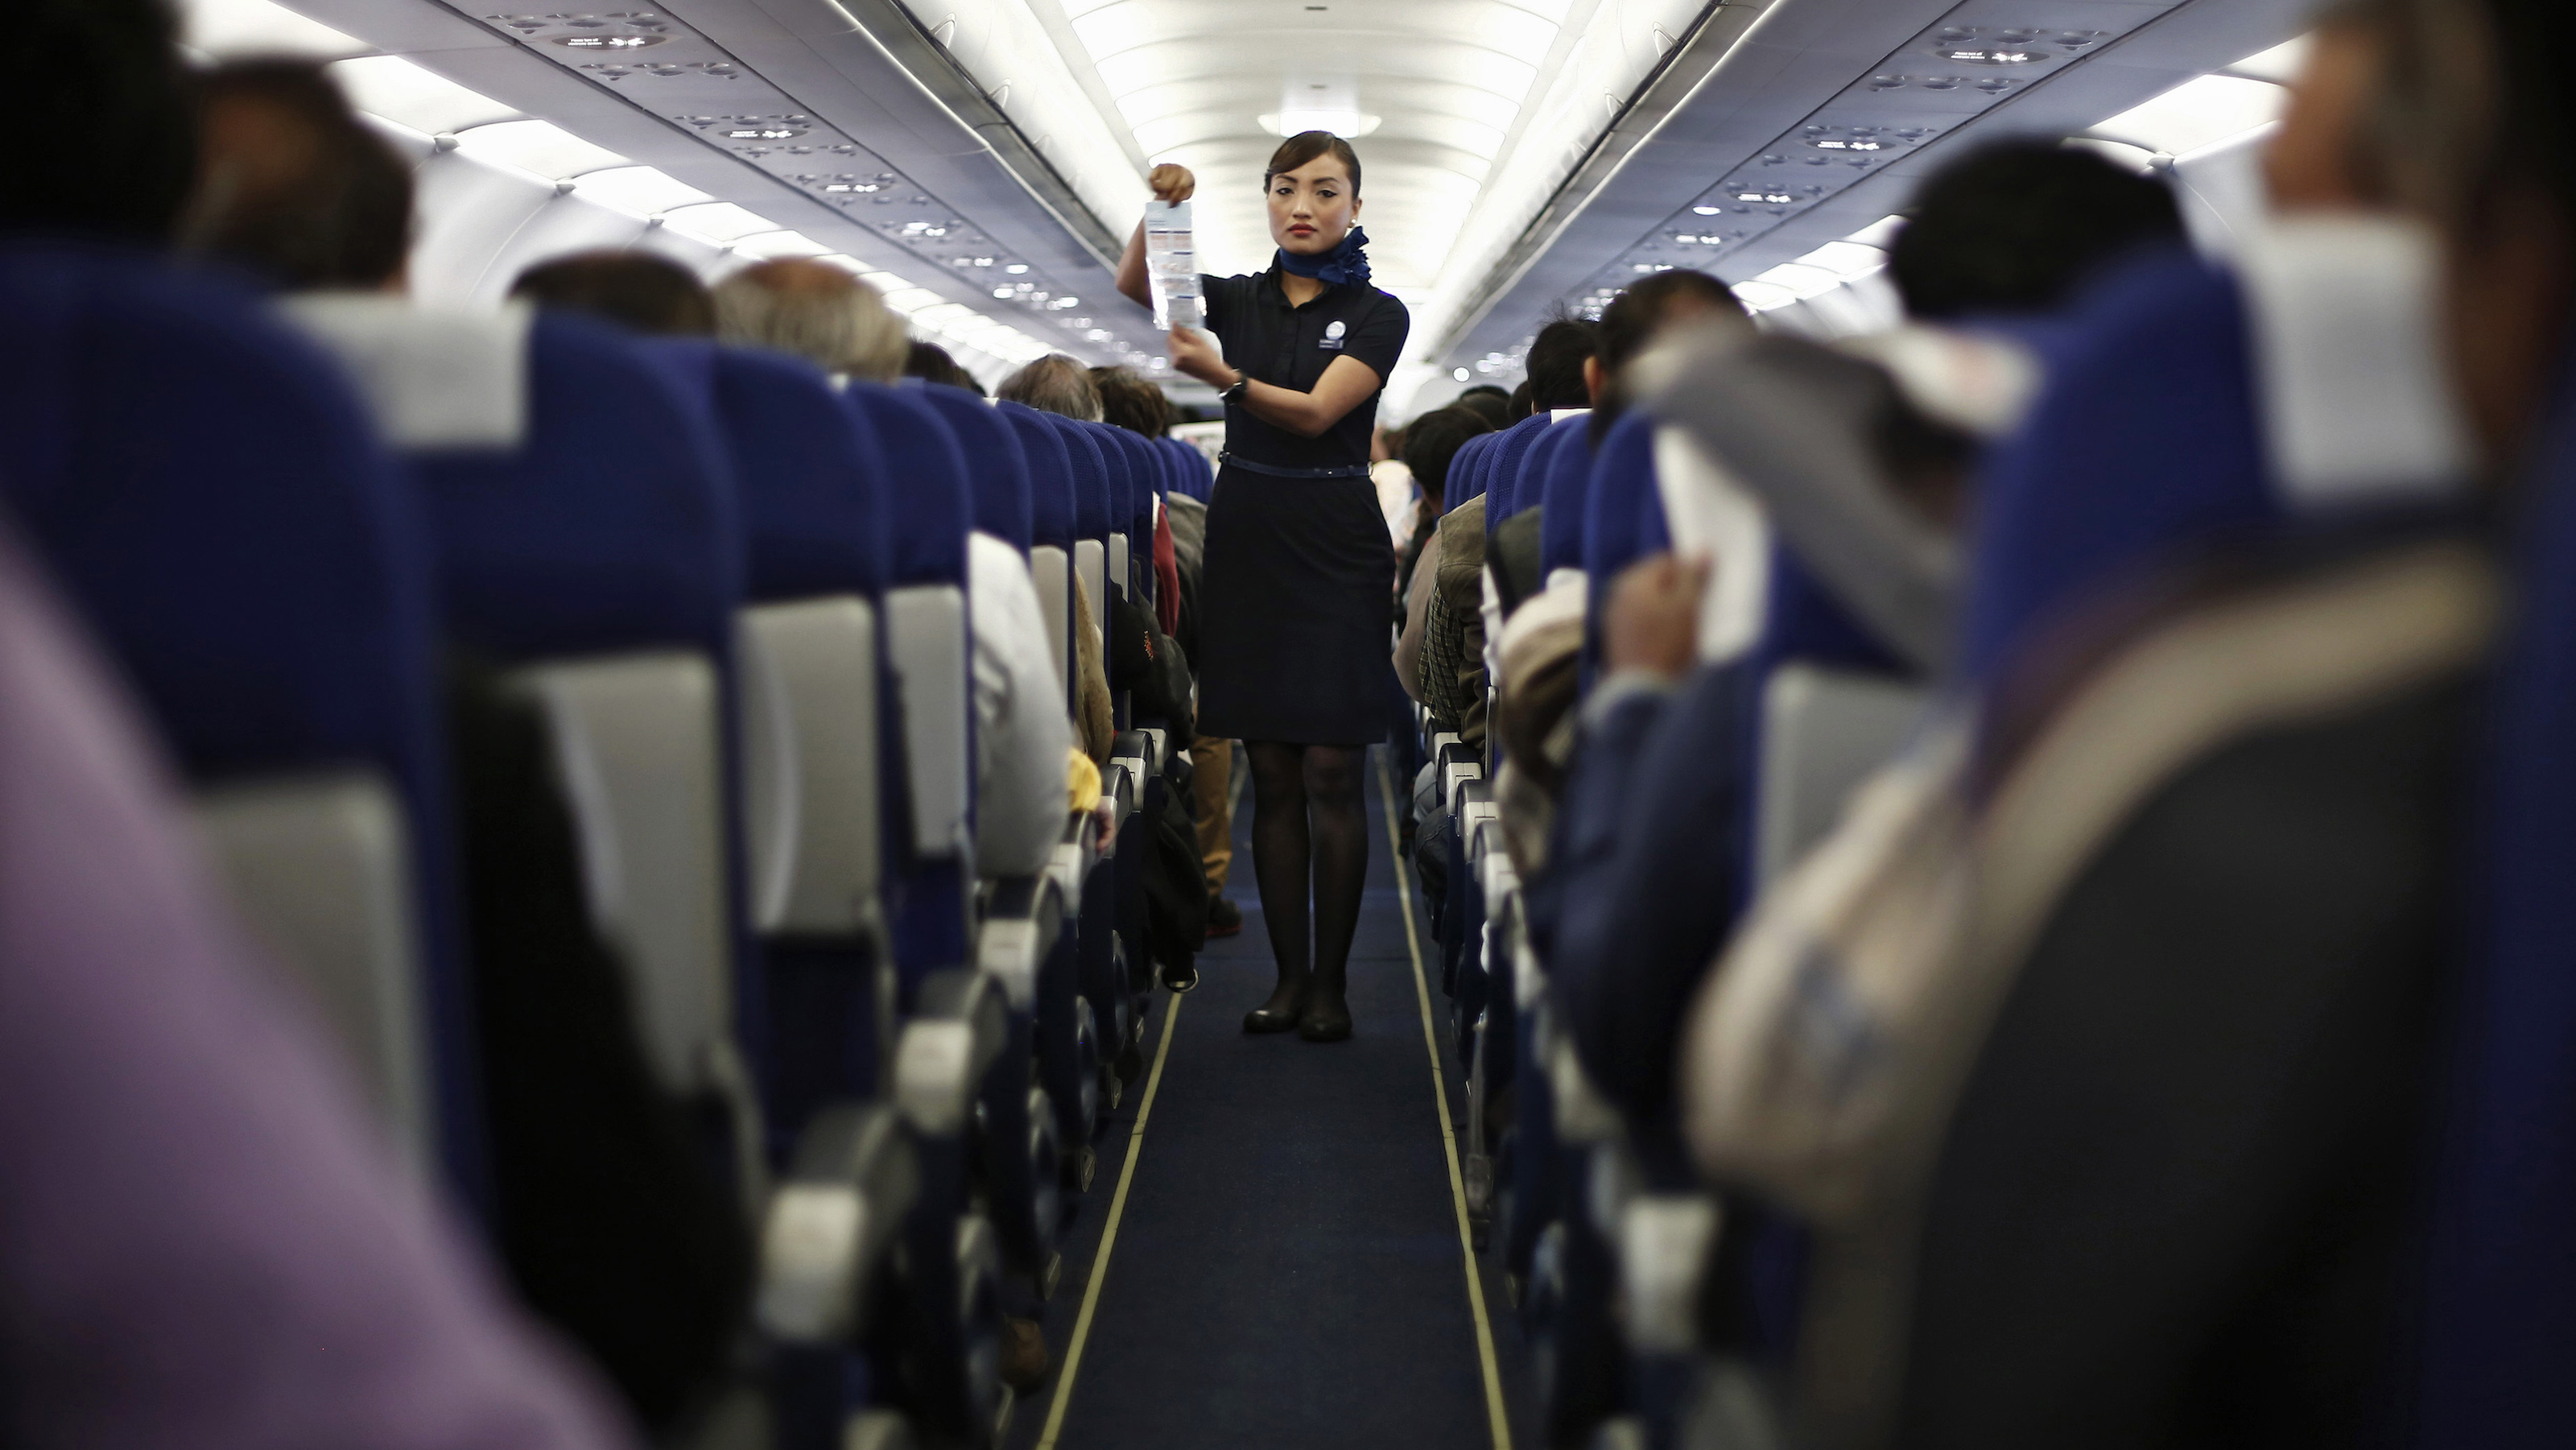 An Indigo Airlines' cabin crew member goes over safety guidelines during a flight